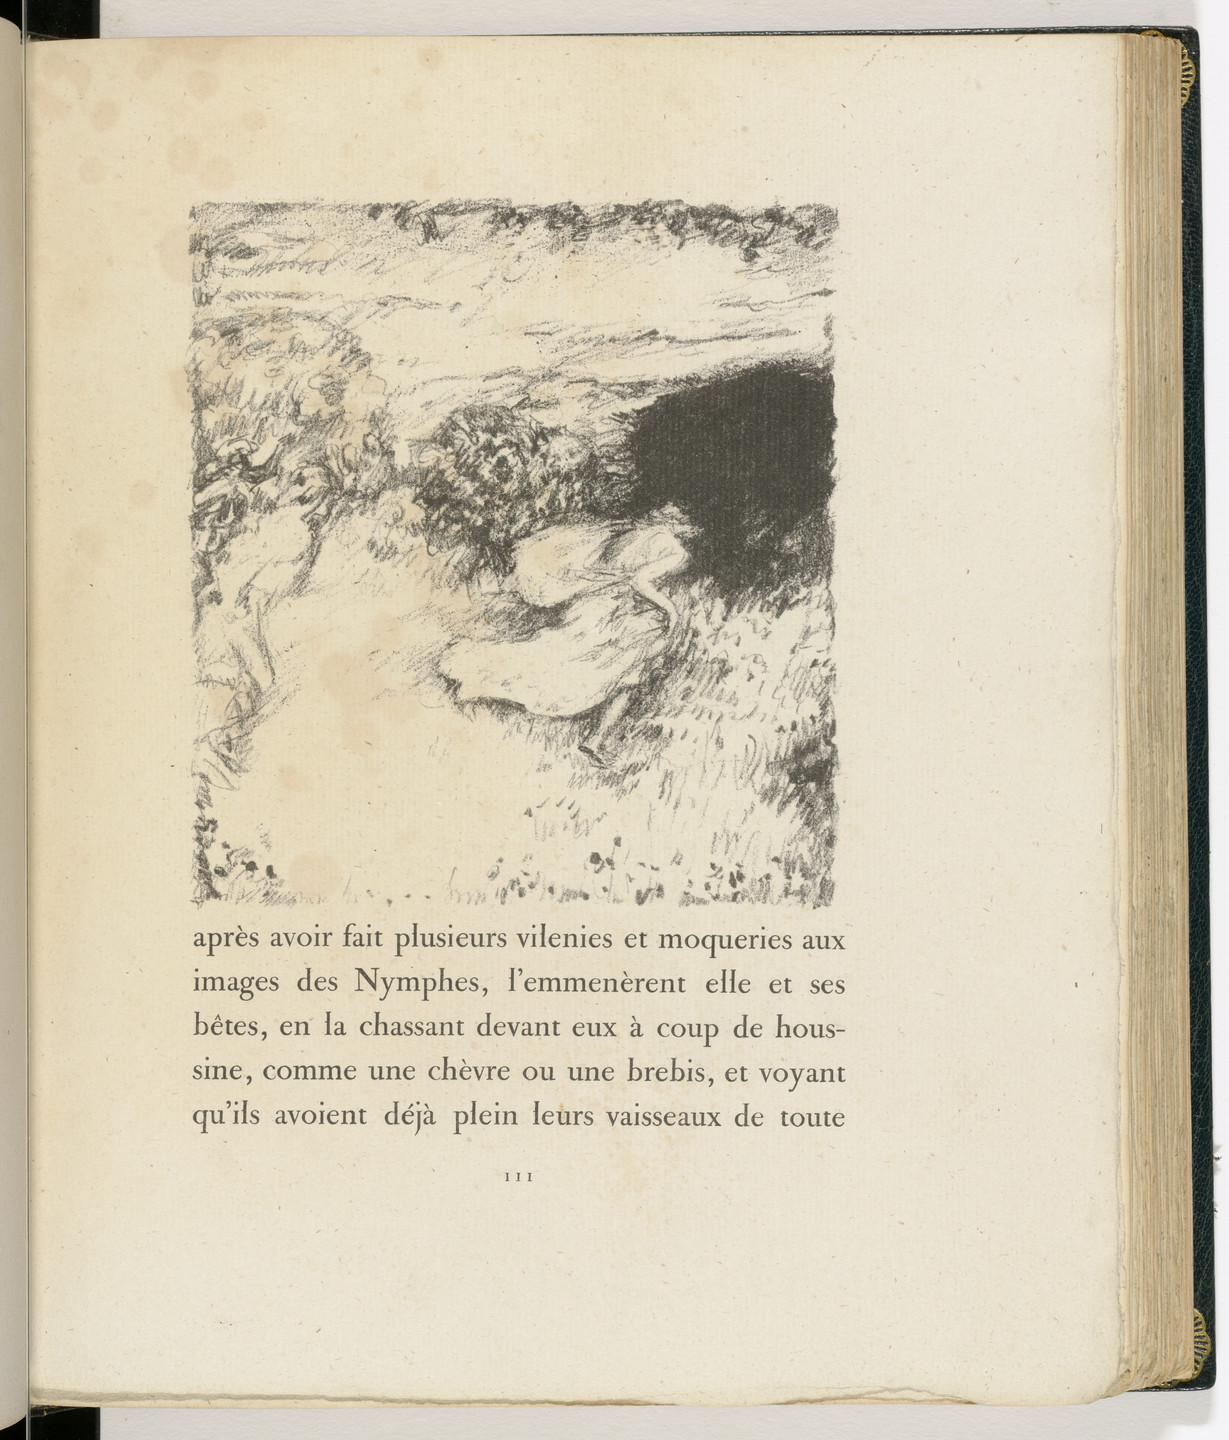 Pierre Bonnard. In-text plate (page 111) from Daphnis et Chloé. 1902